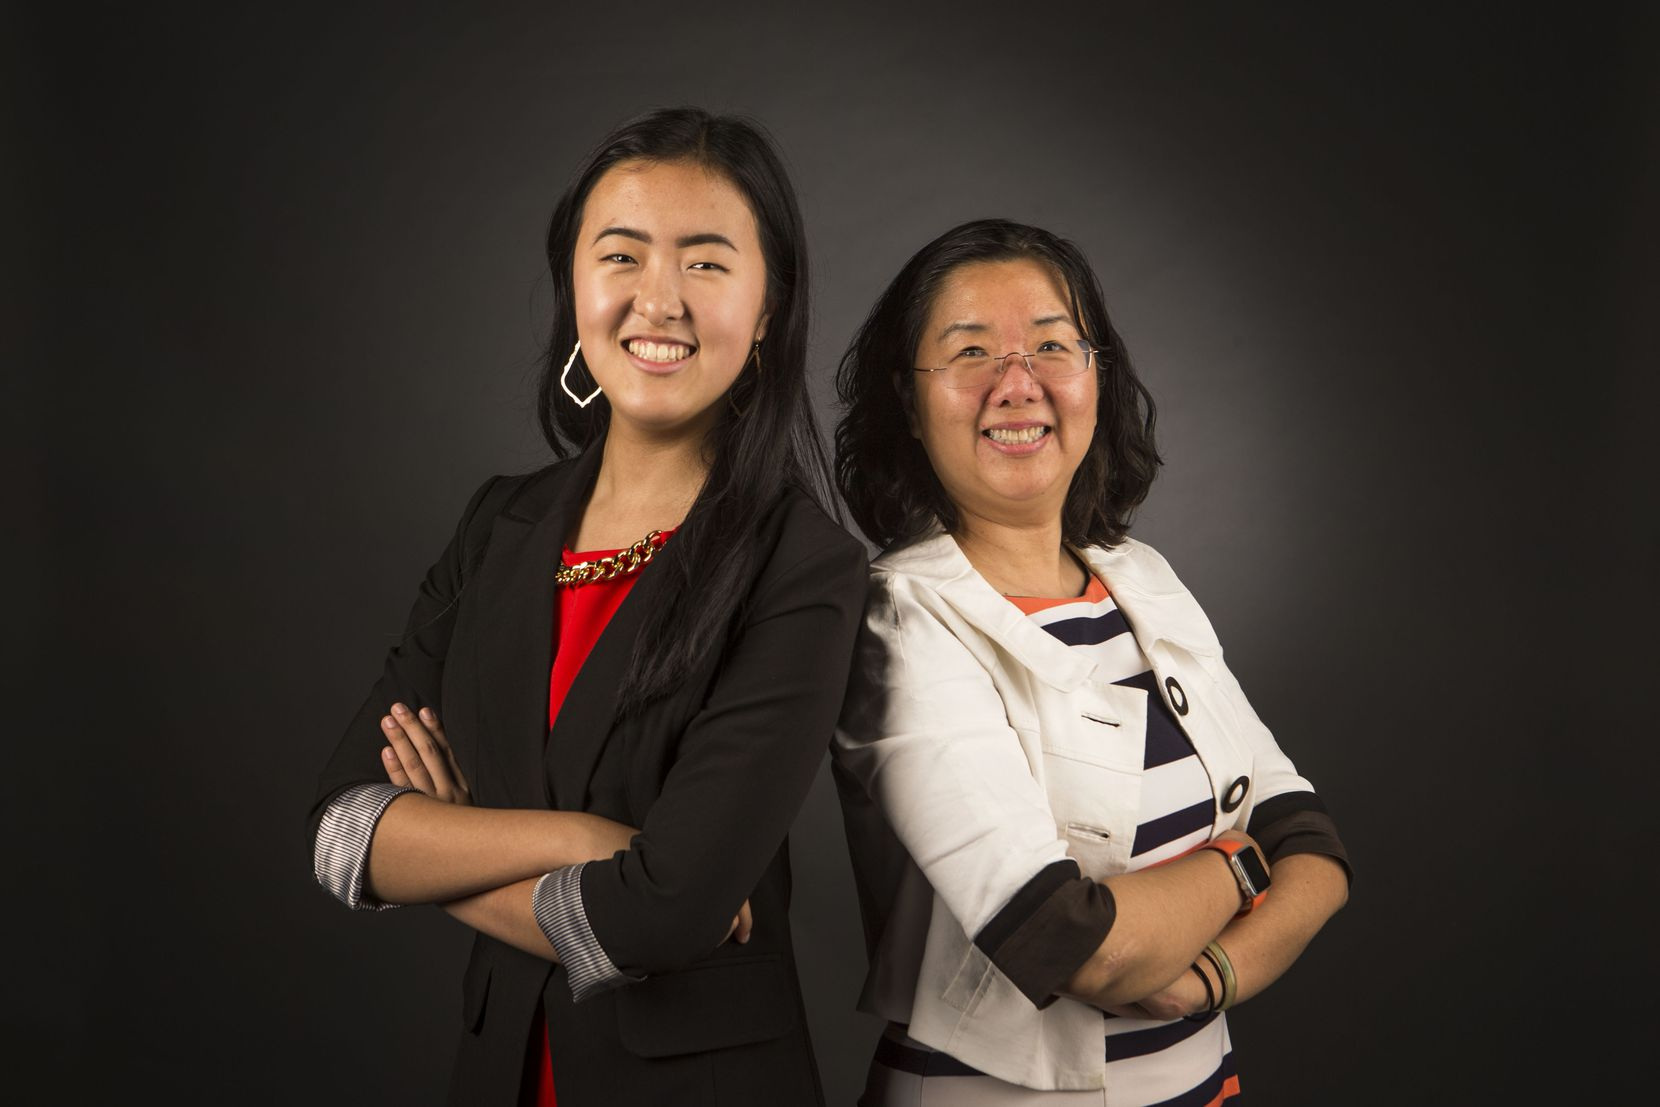 Alice Hou, founder of Girls in STEM, left, and her mom, Sara He, pose for a photograph at The Dallas Morning News on July 24, 2018. (Carly Geraci/The Dallas Morning News)